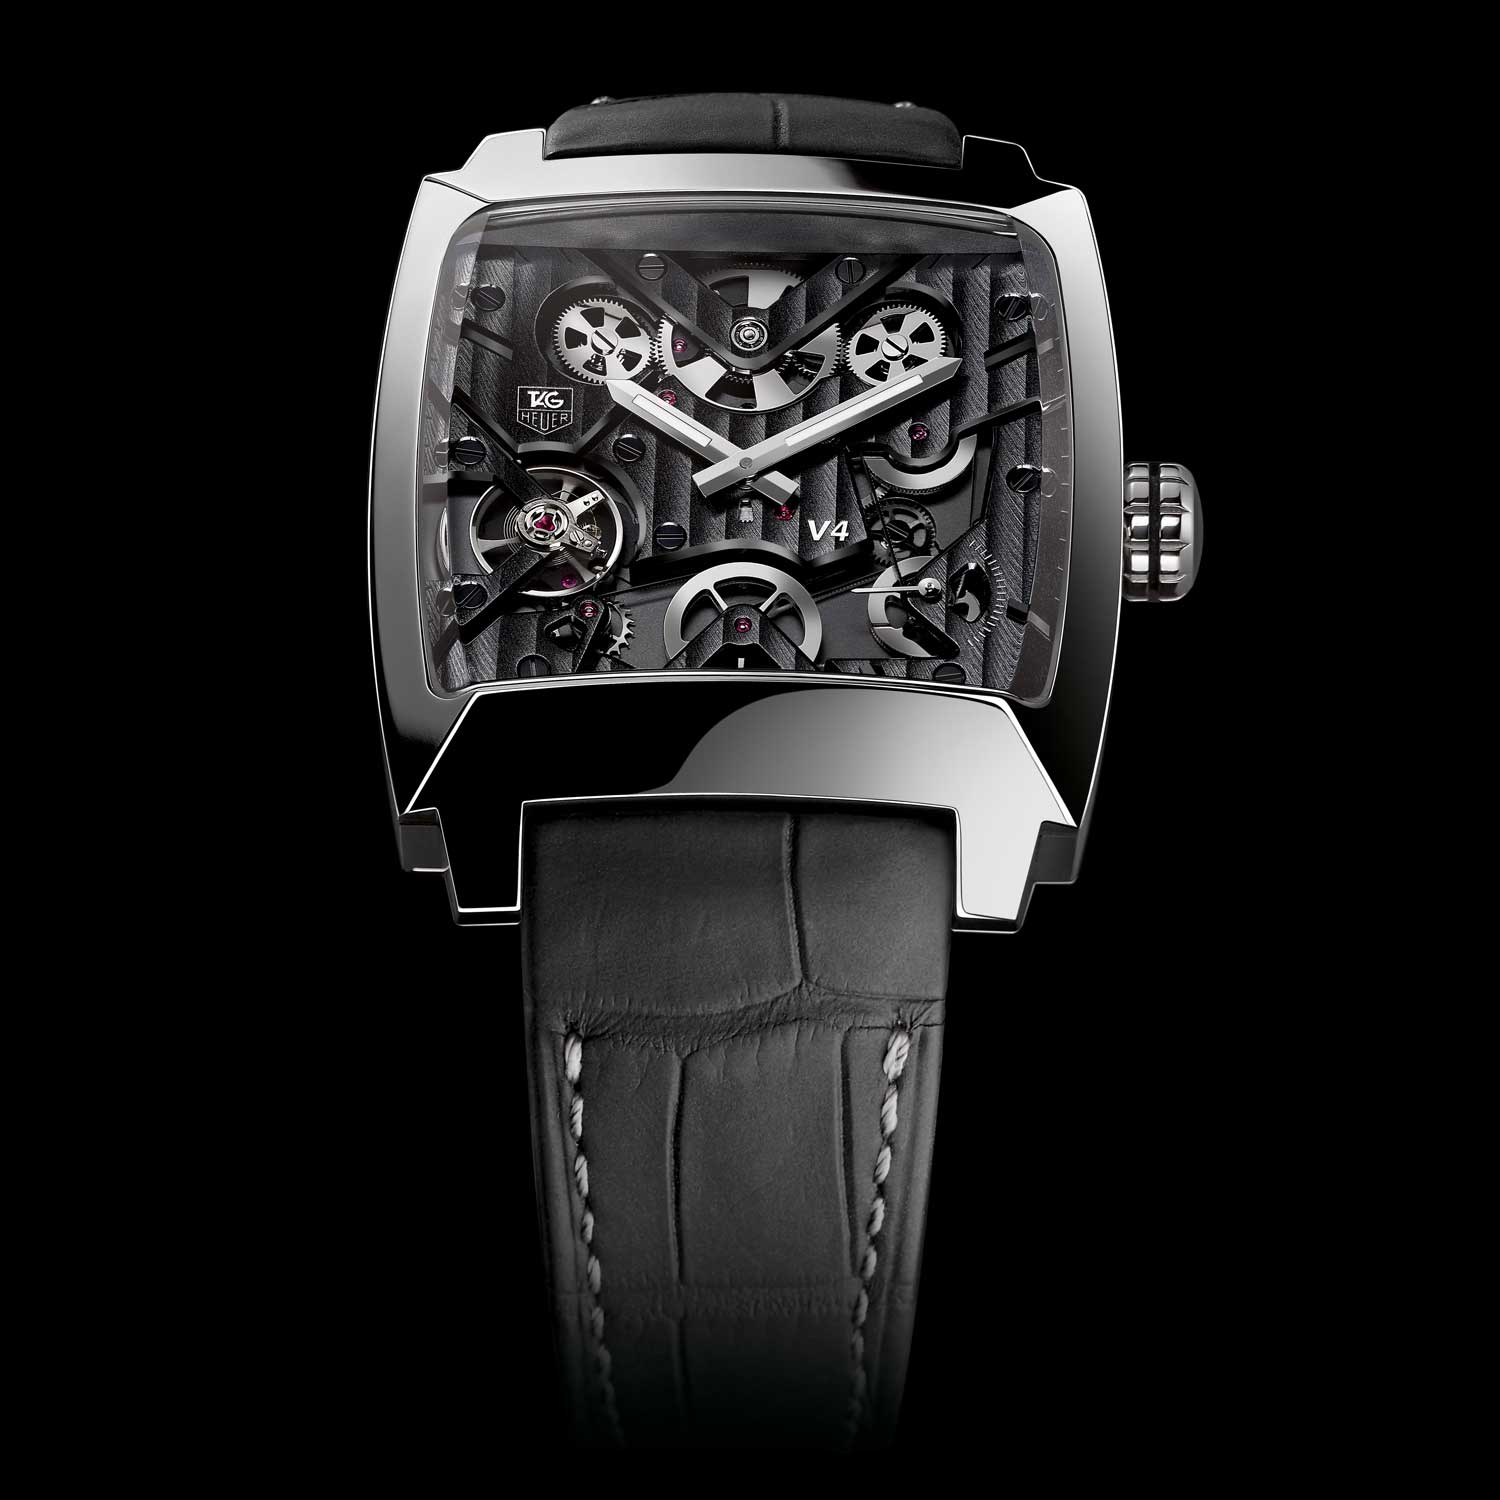 Unveiled as a Concept Watch at BaselWorld 2004, the TAG Heuer Monaco V4, twice patented, is the first watch in the world to feature optimized mechanical transmission belts and a linear winding system. Its bold design is inspired by the legendary Monaco, oversized and square, was first seen on Steve McQueen's wrist in the 1970 film Le Mans